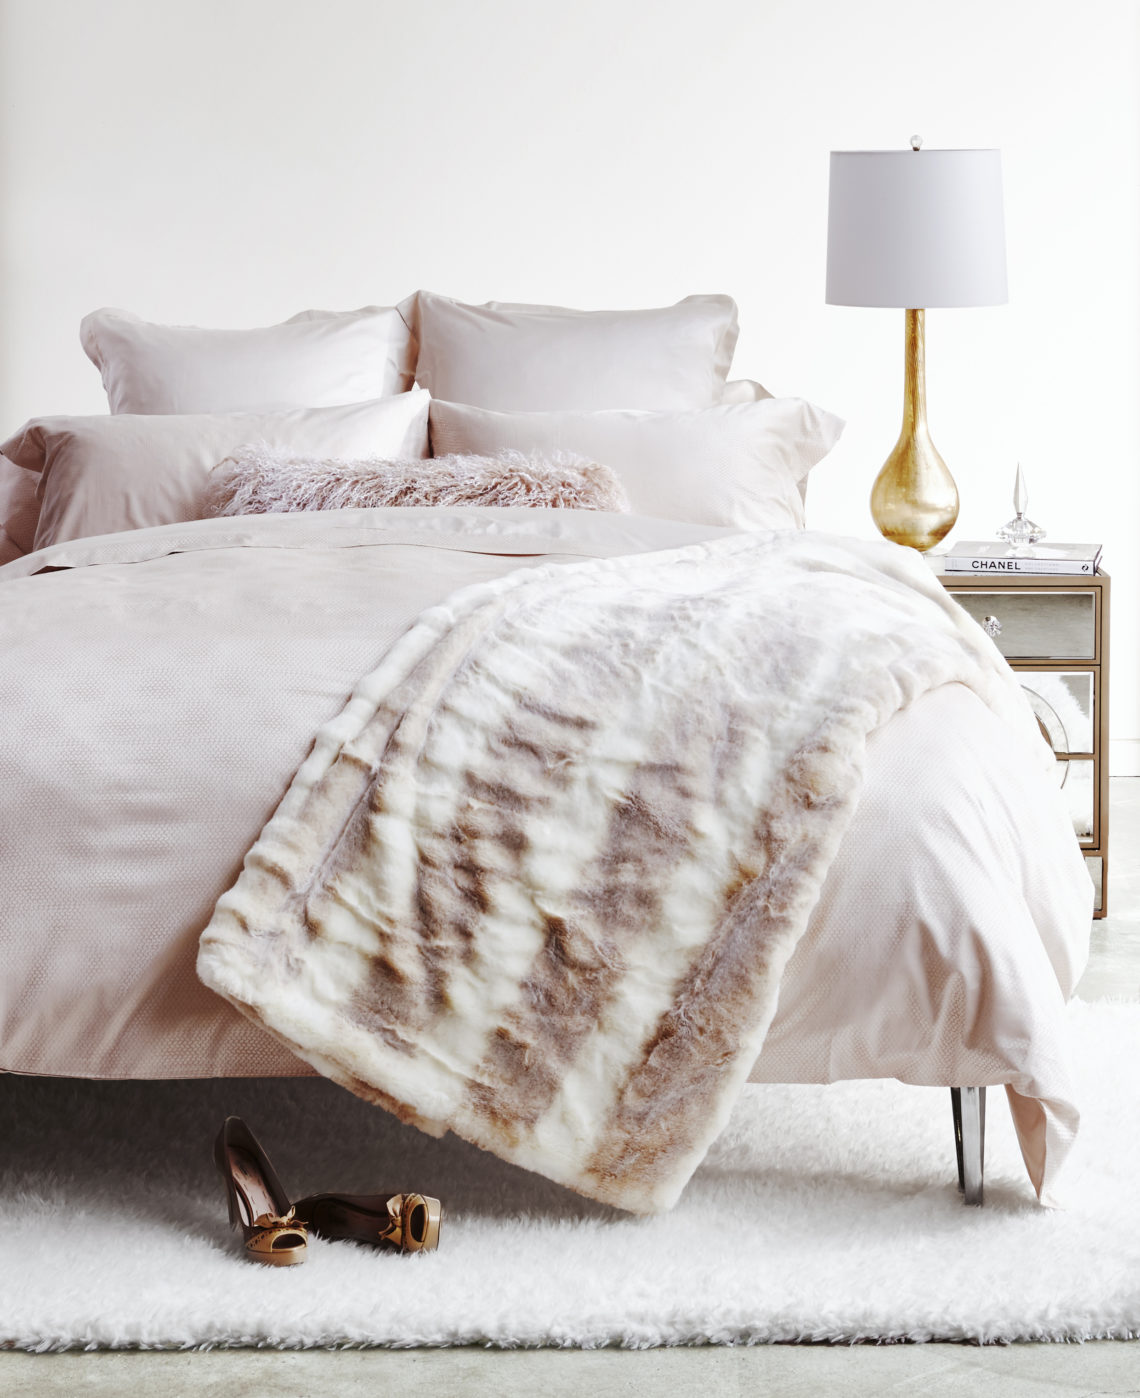 wide shot of faux fur throw on creamy white bedroom